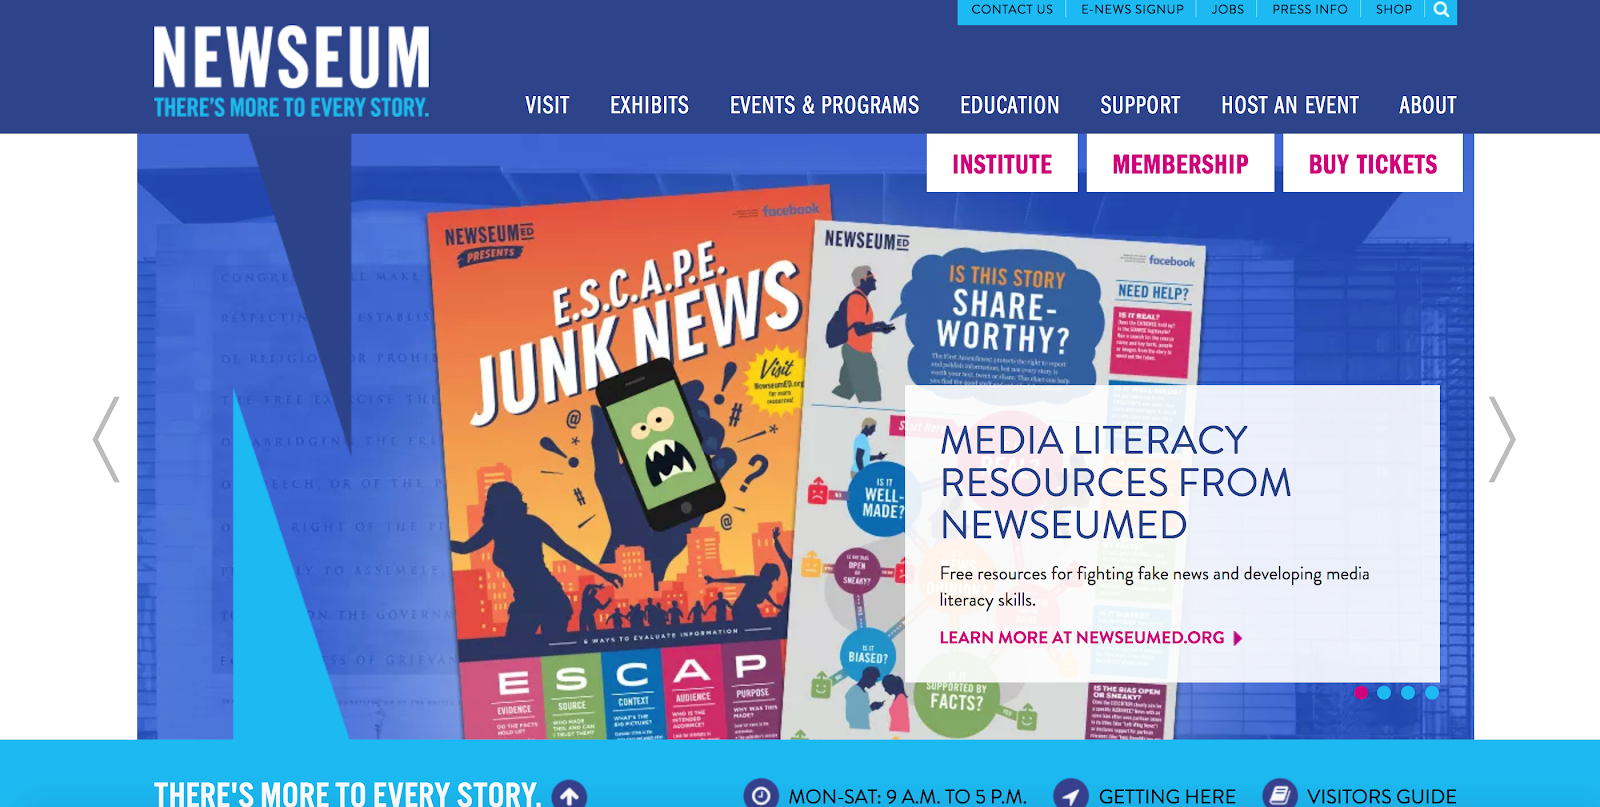 Newseum educational resources